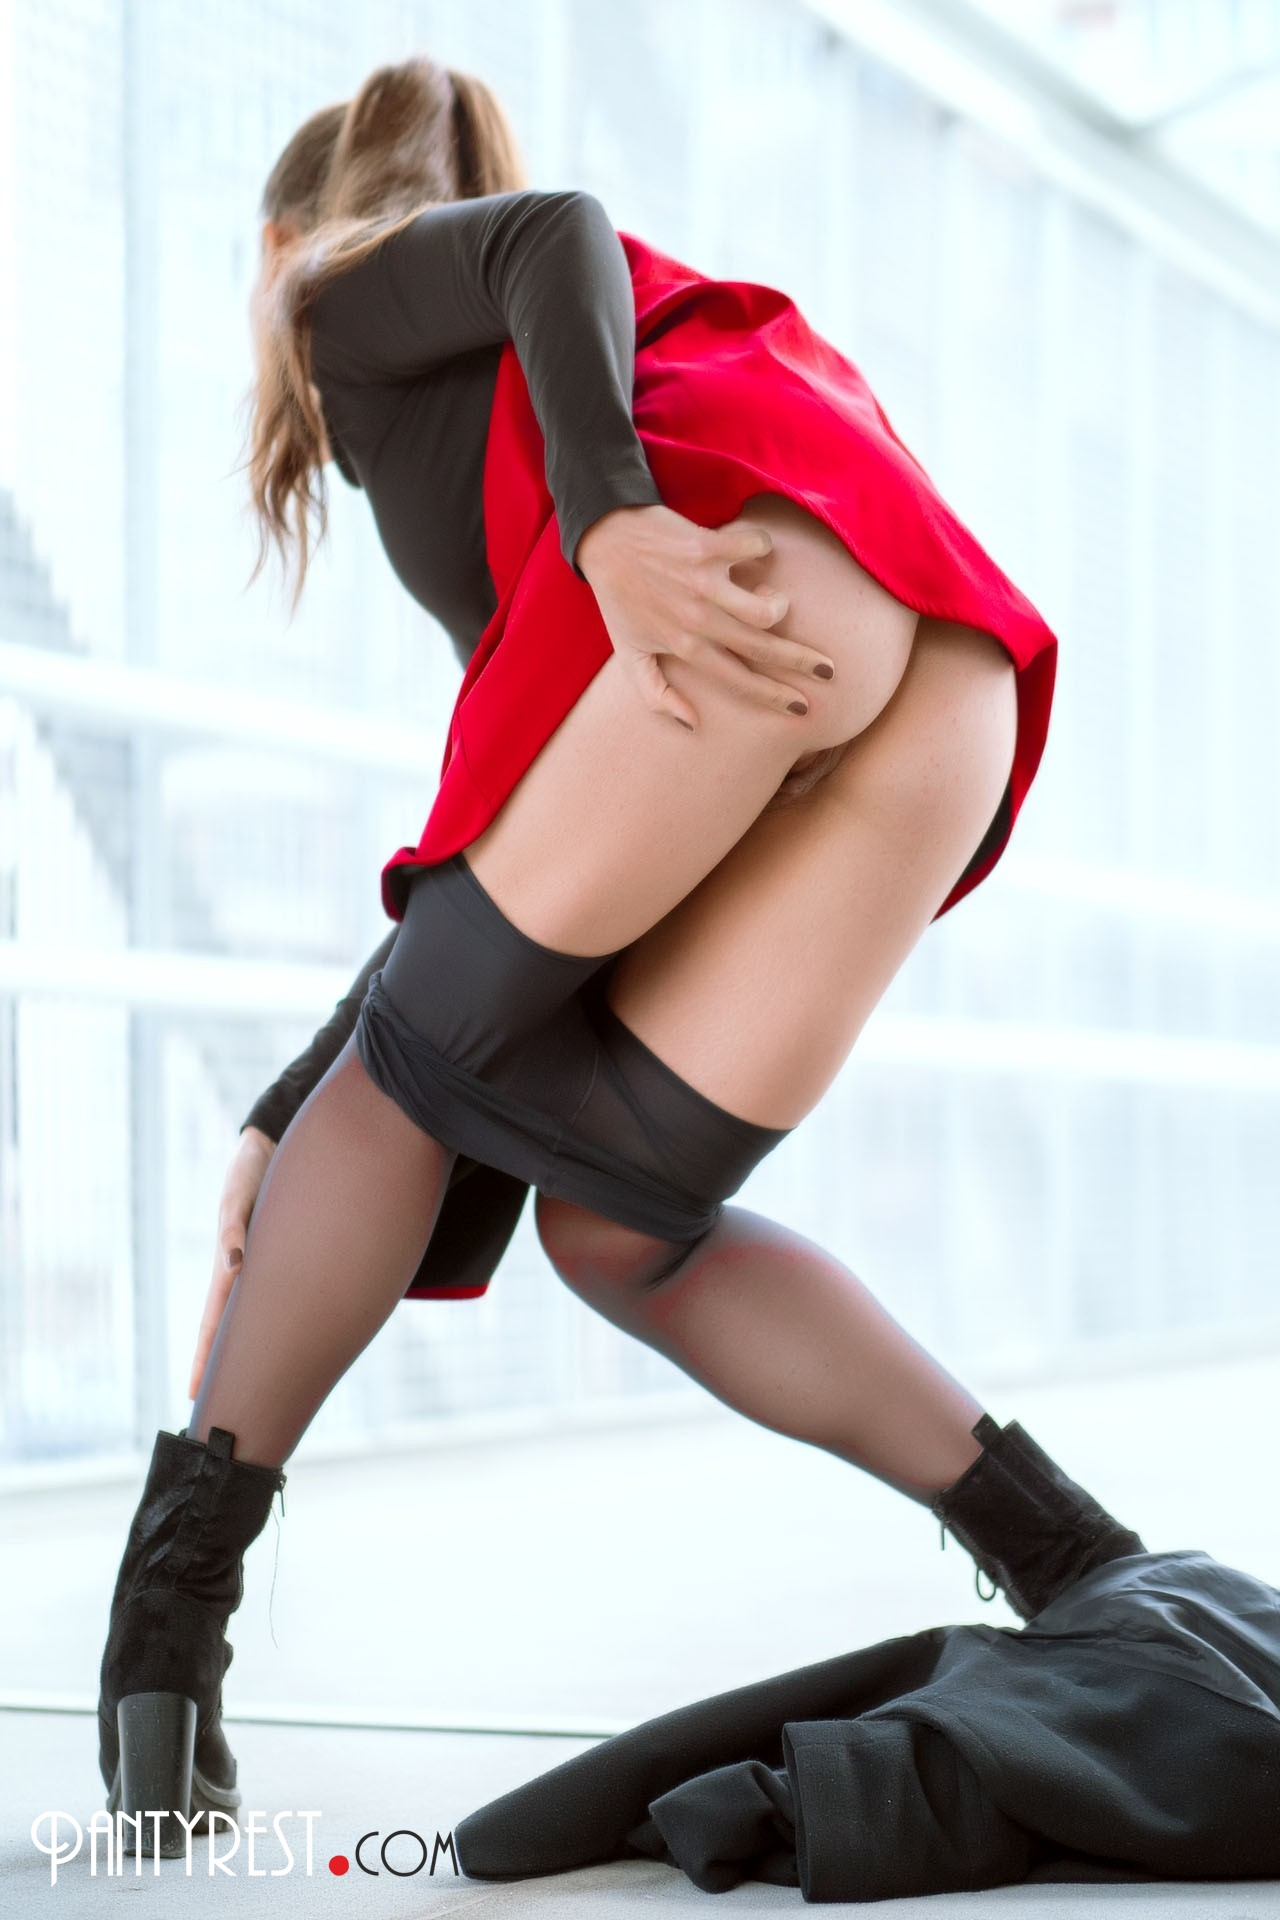 Beautiful girl in nylons black pantyhose. My personal selection of hot pics sexy black pantyhose. Do not forget to bookmark this website to check updates!